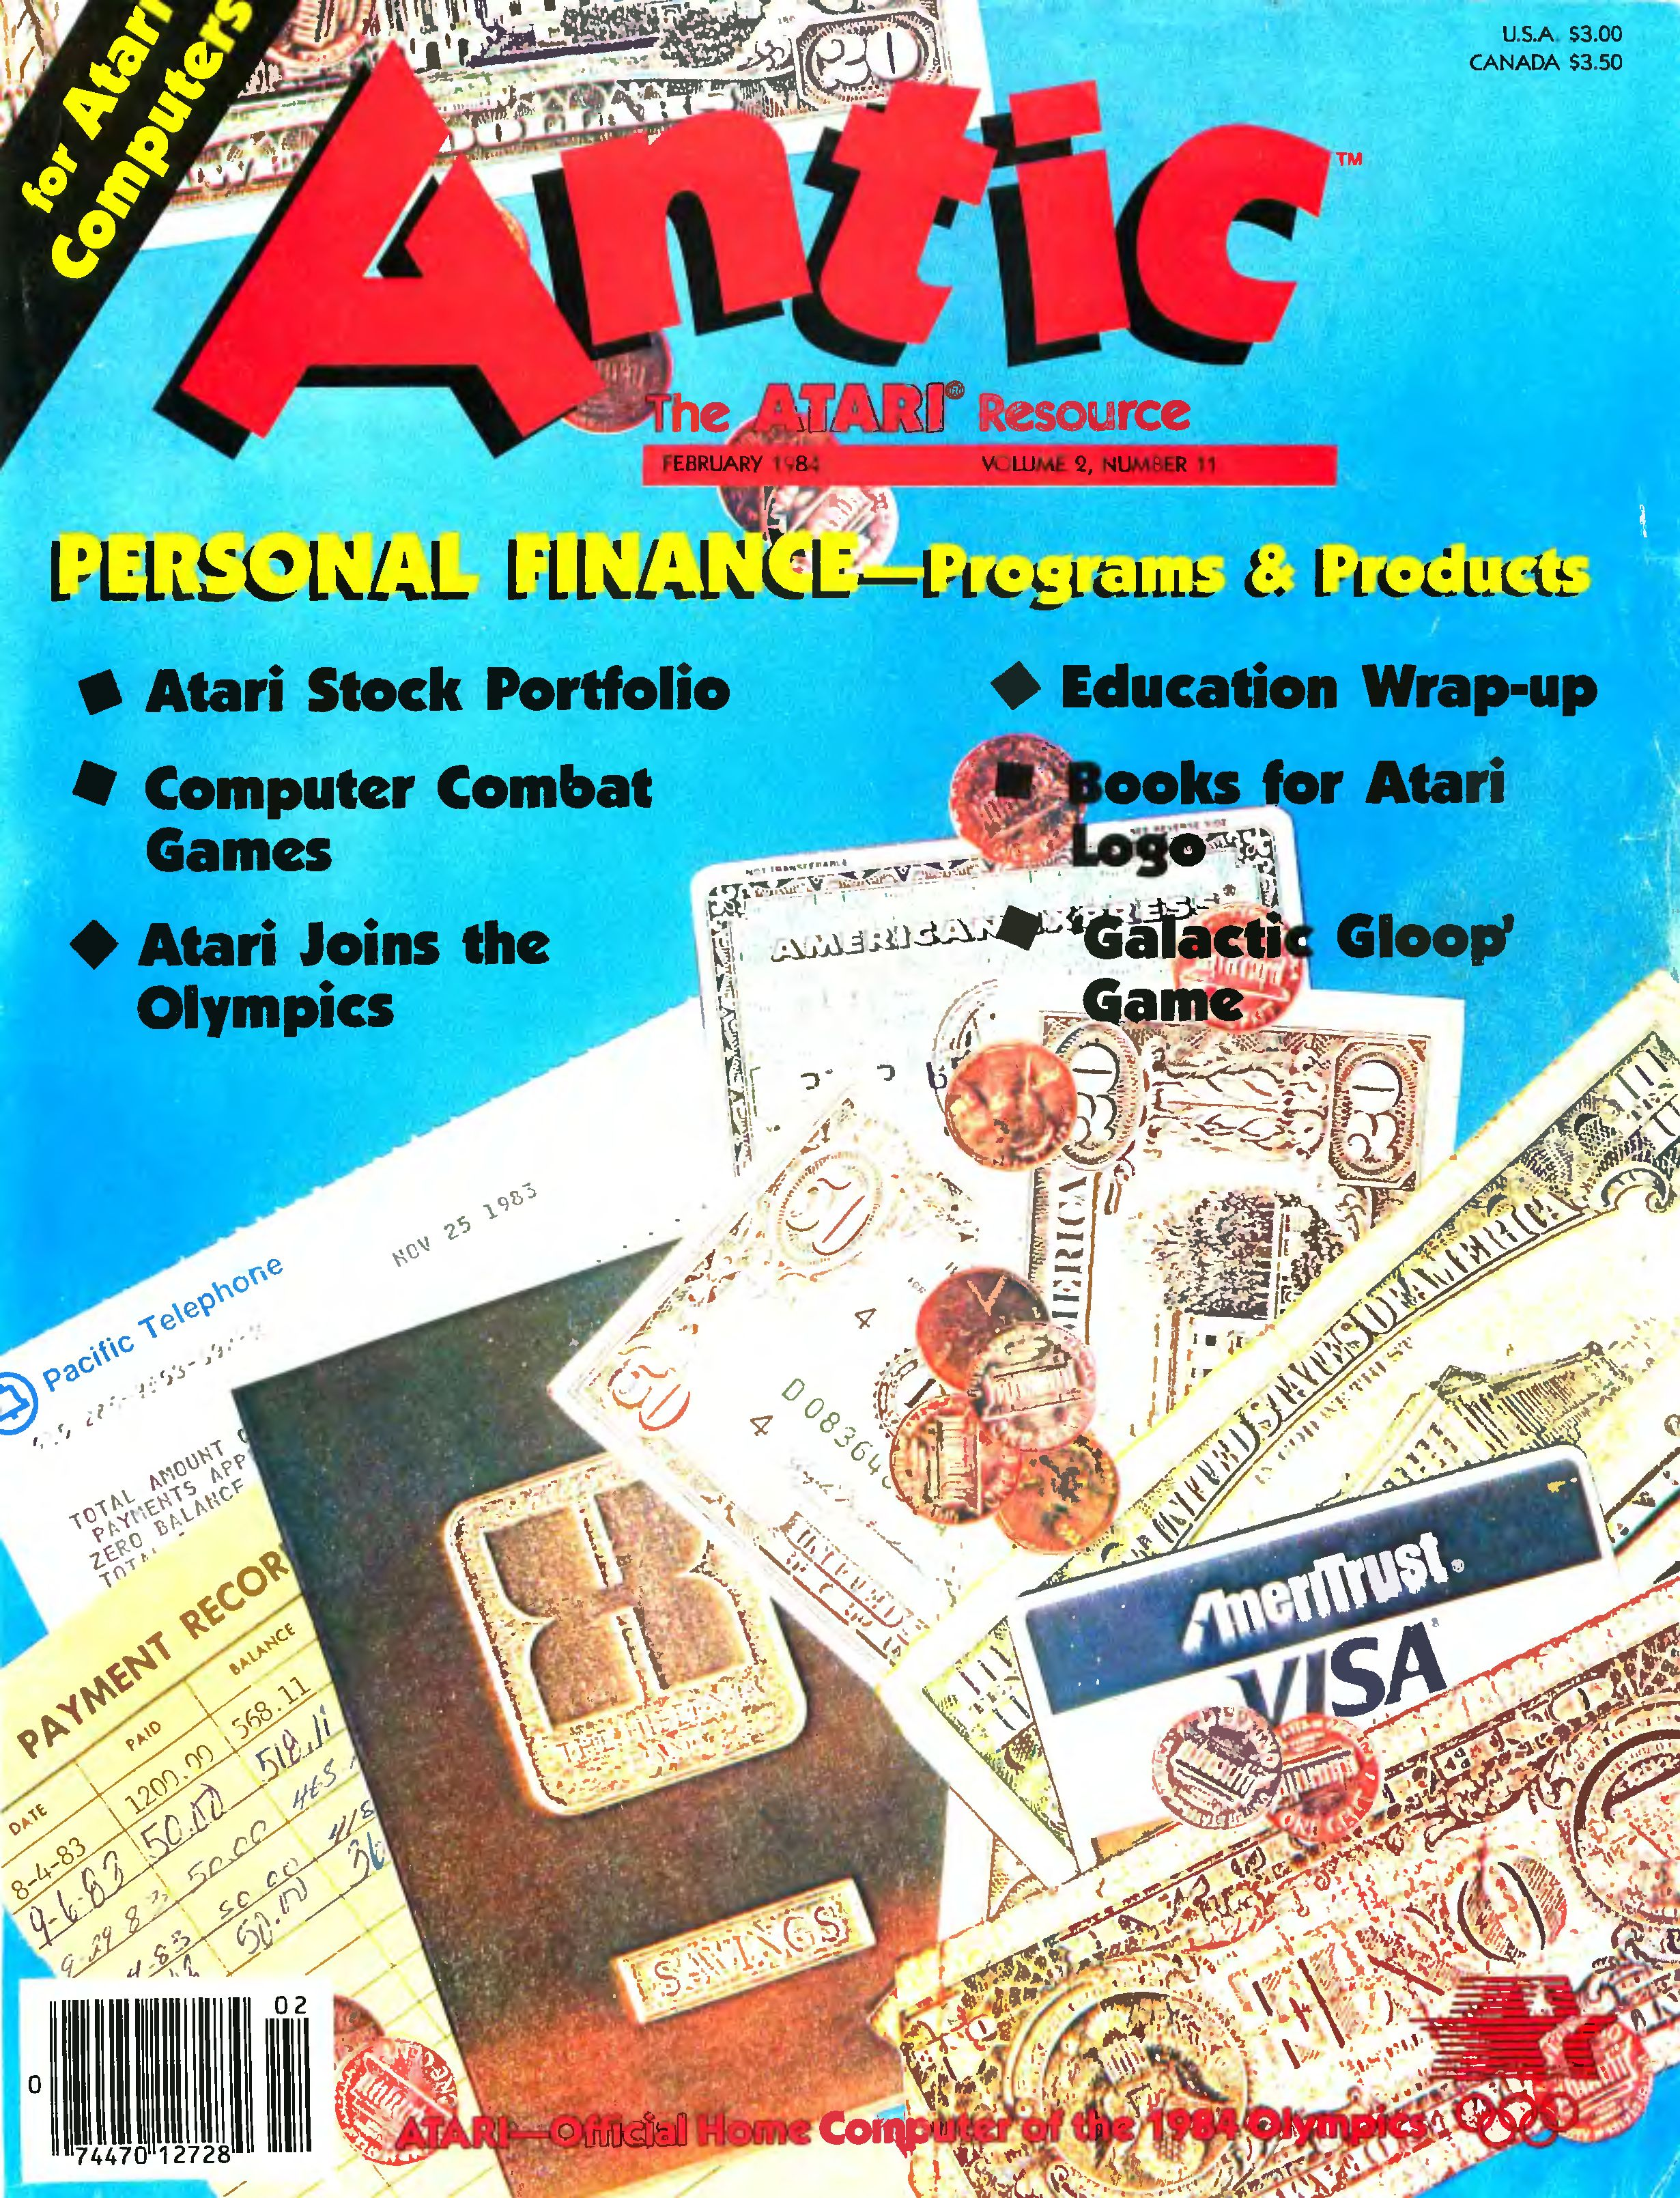 antic_vol_2-11_1984-02_personal_finance_page_0001